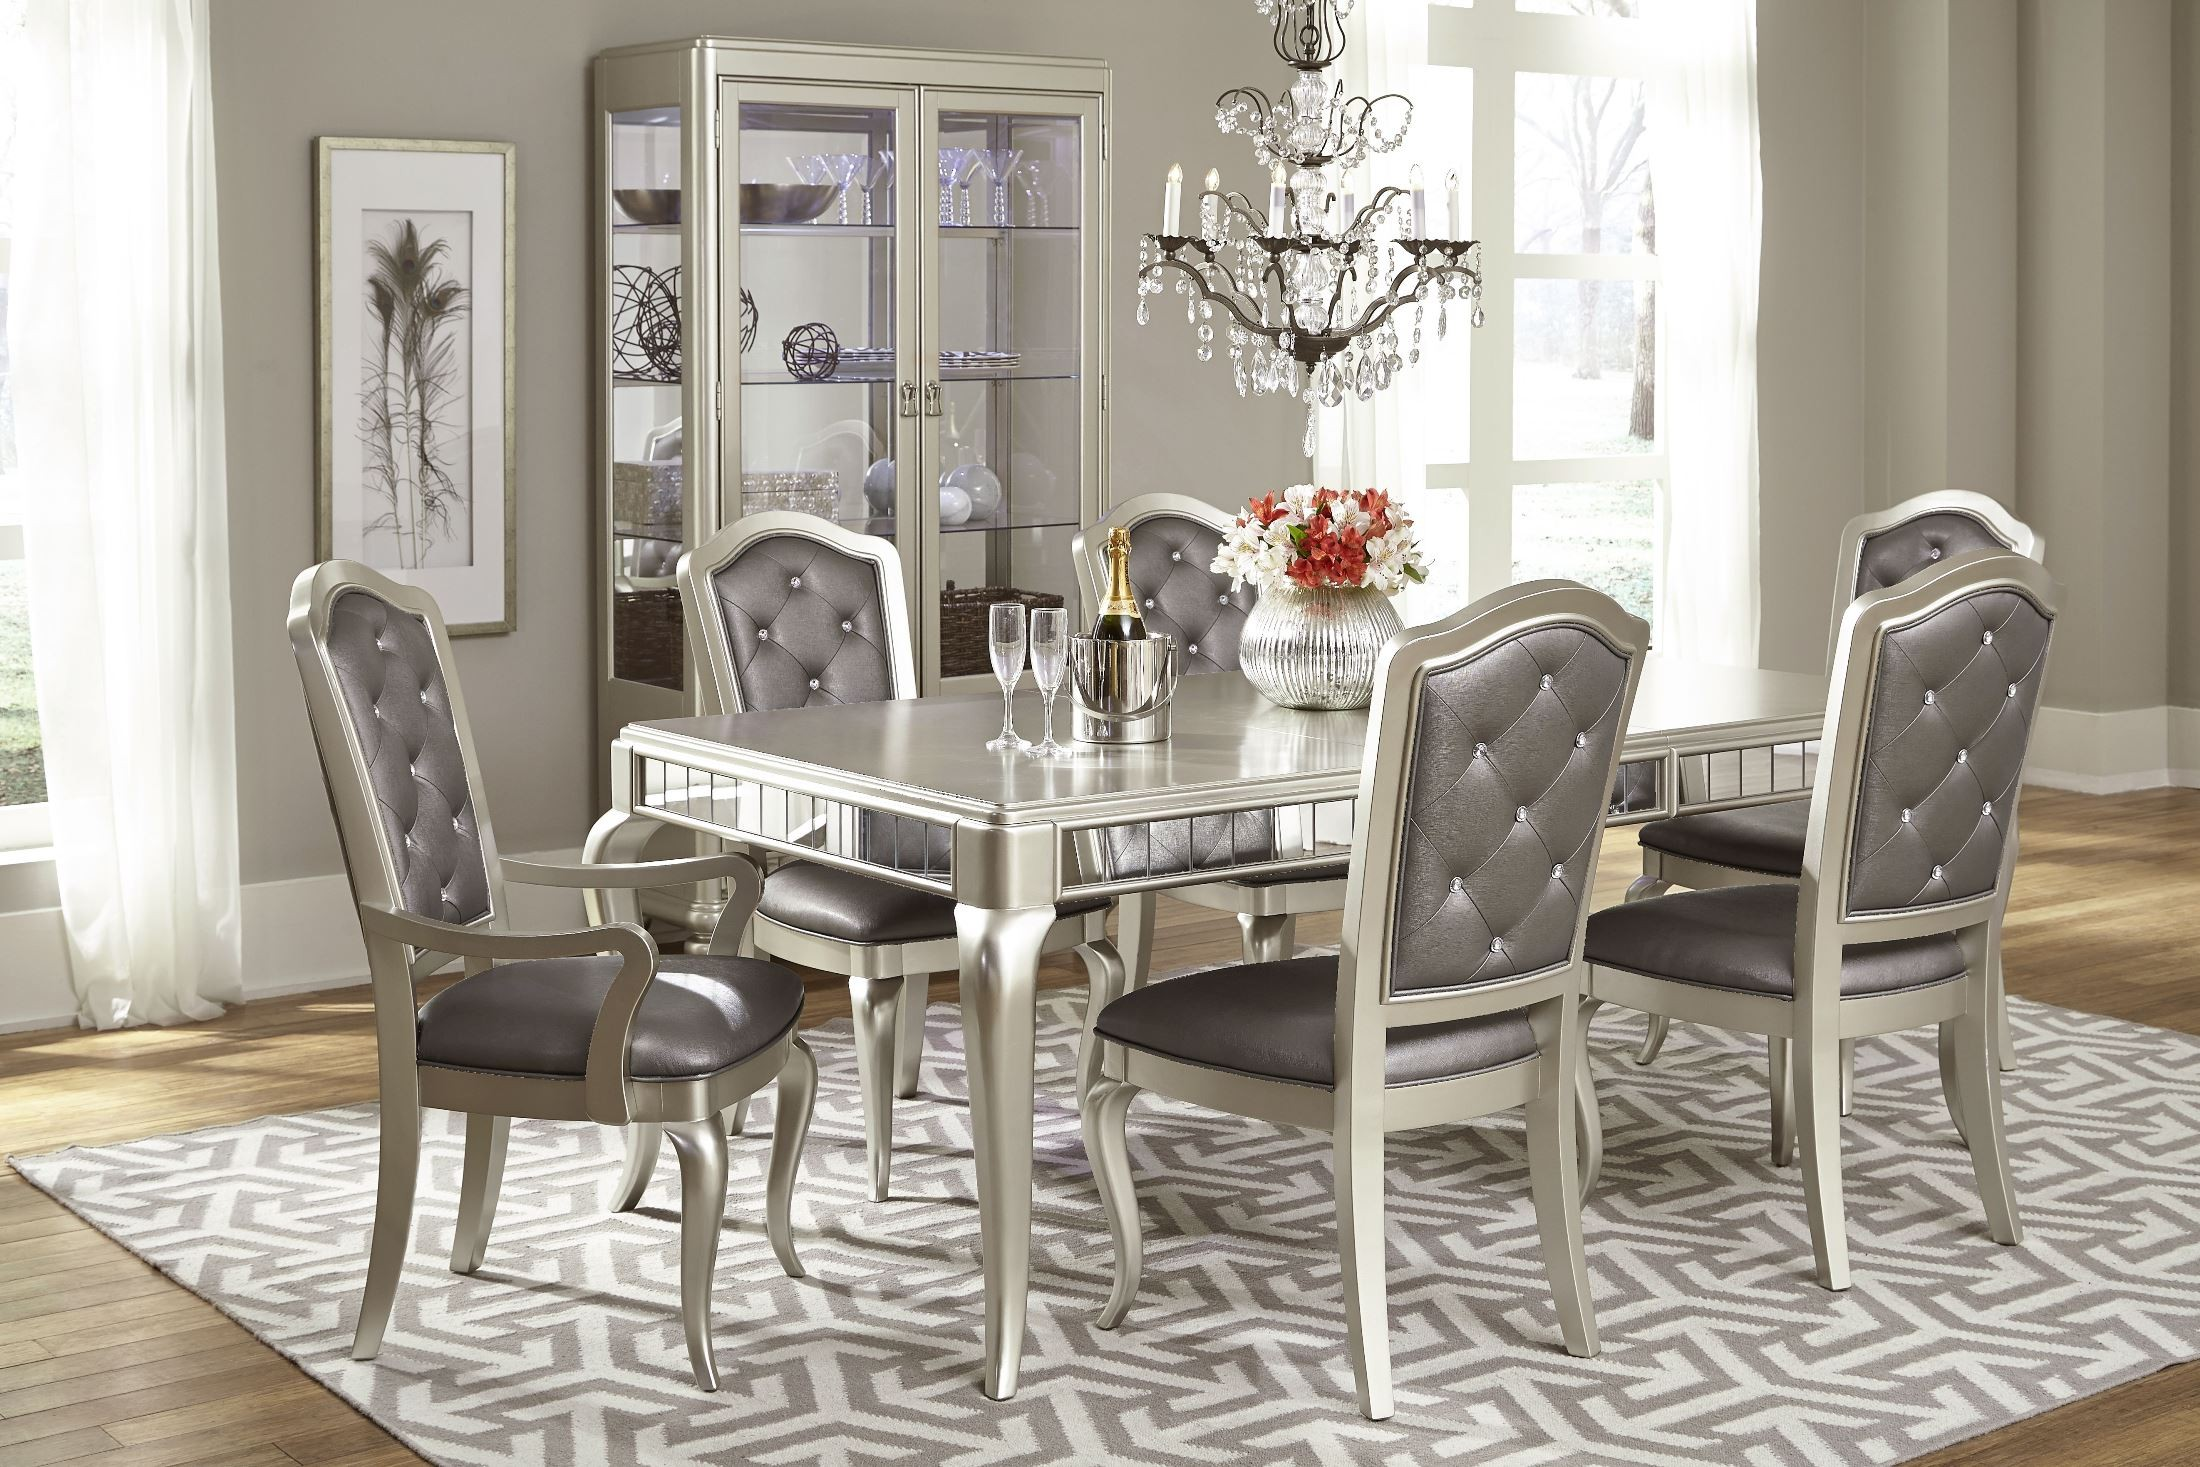 z gallerie chairs padded garden chair covers diva rectangular extendable leg dining room set from samuel lawrence (8808-135) | coleman furniture